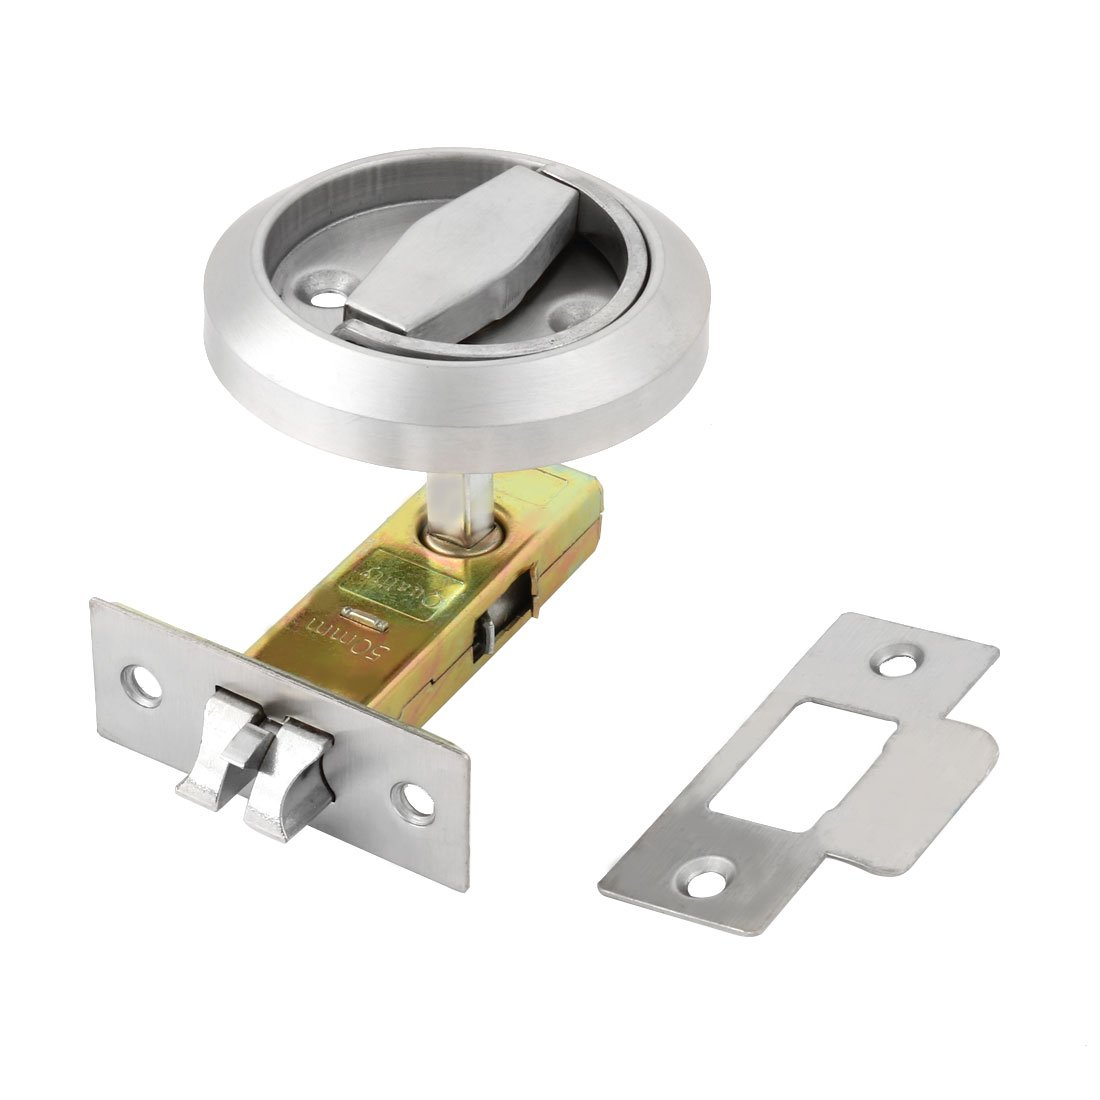 uxcell Stainless Steel Family Door Cabinet Replaceable Hardware Security Lock Silver Tone